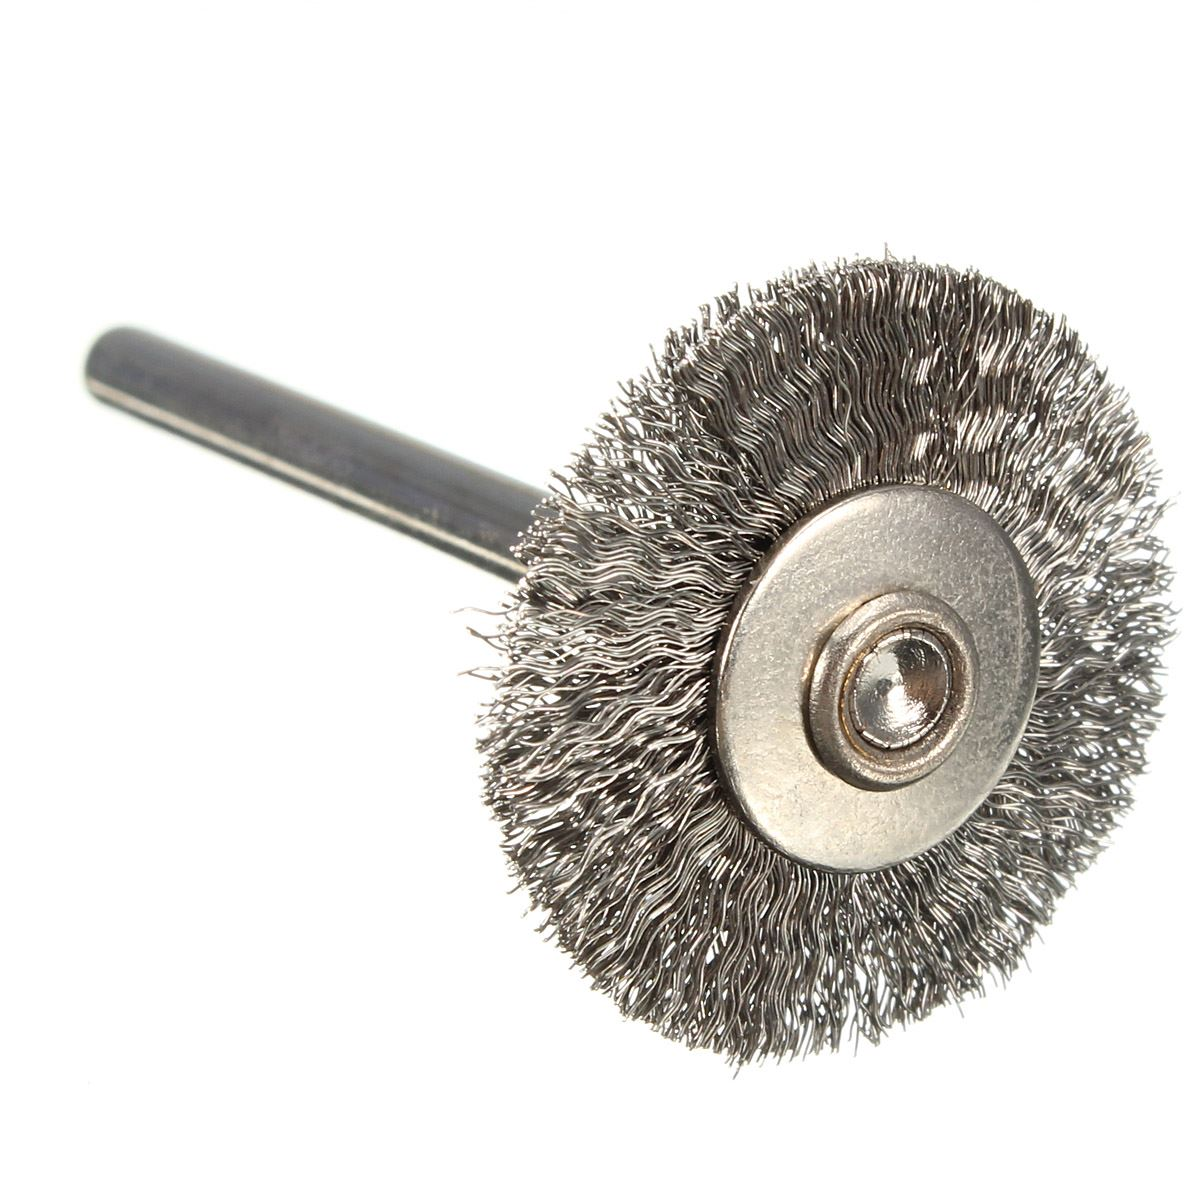 10x rotary mini tools steel wire wheel brushes cup rust cleaning - 22mm Stainless Steel Wire Wheels Brushes For Die Grinder Rotary Tools China Mainland